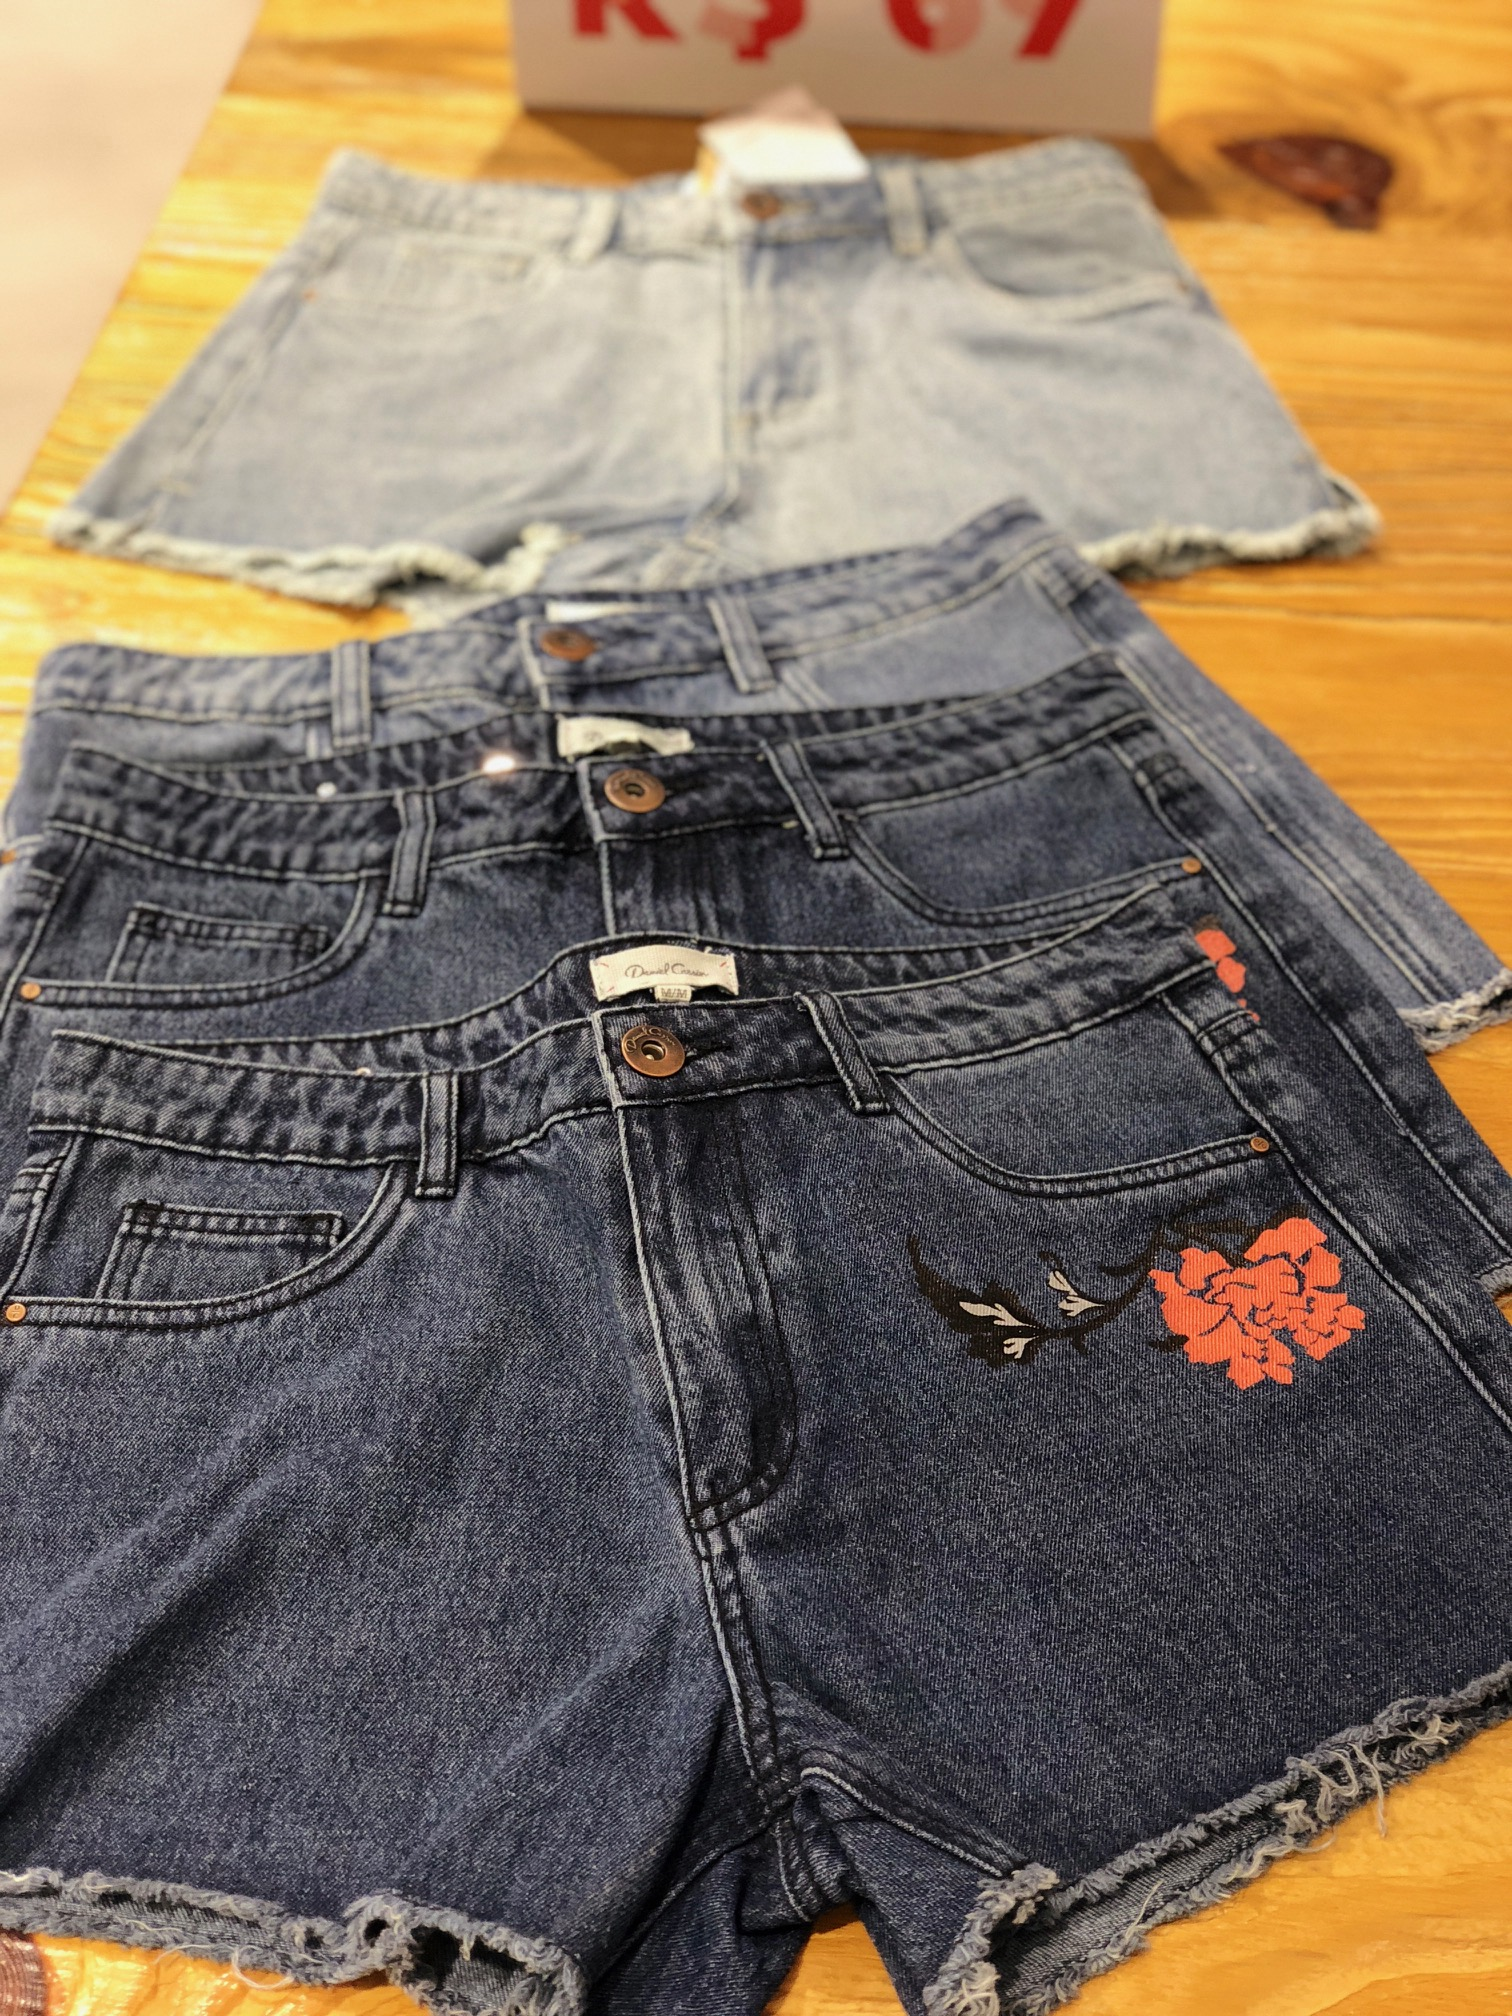 00dc-shorts-jeans-mais